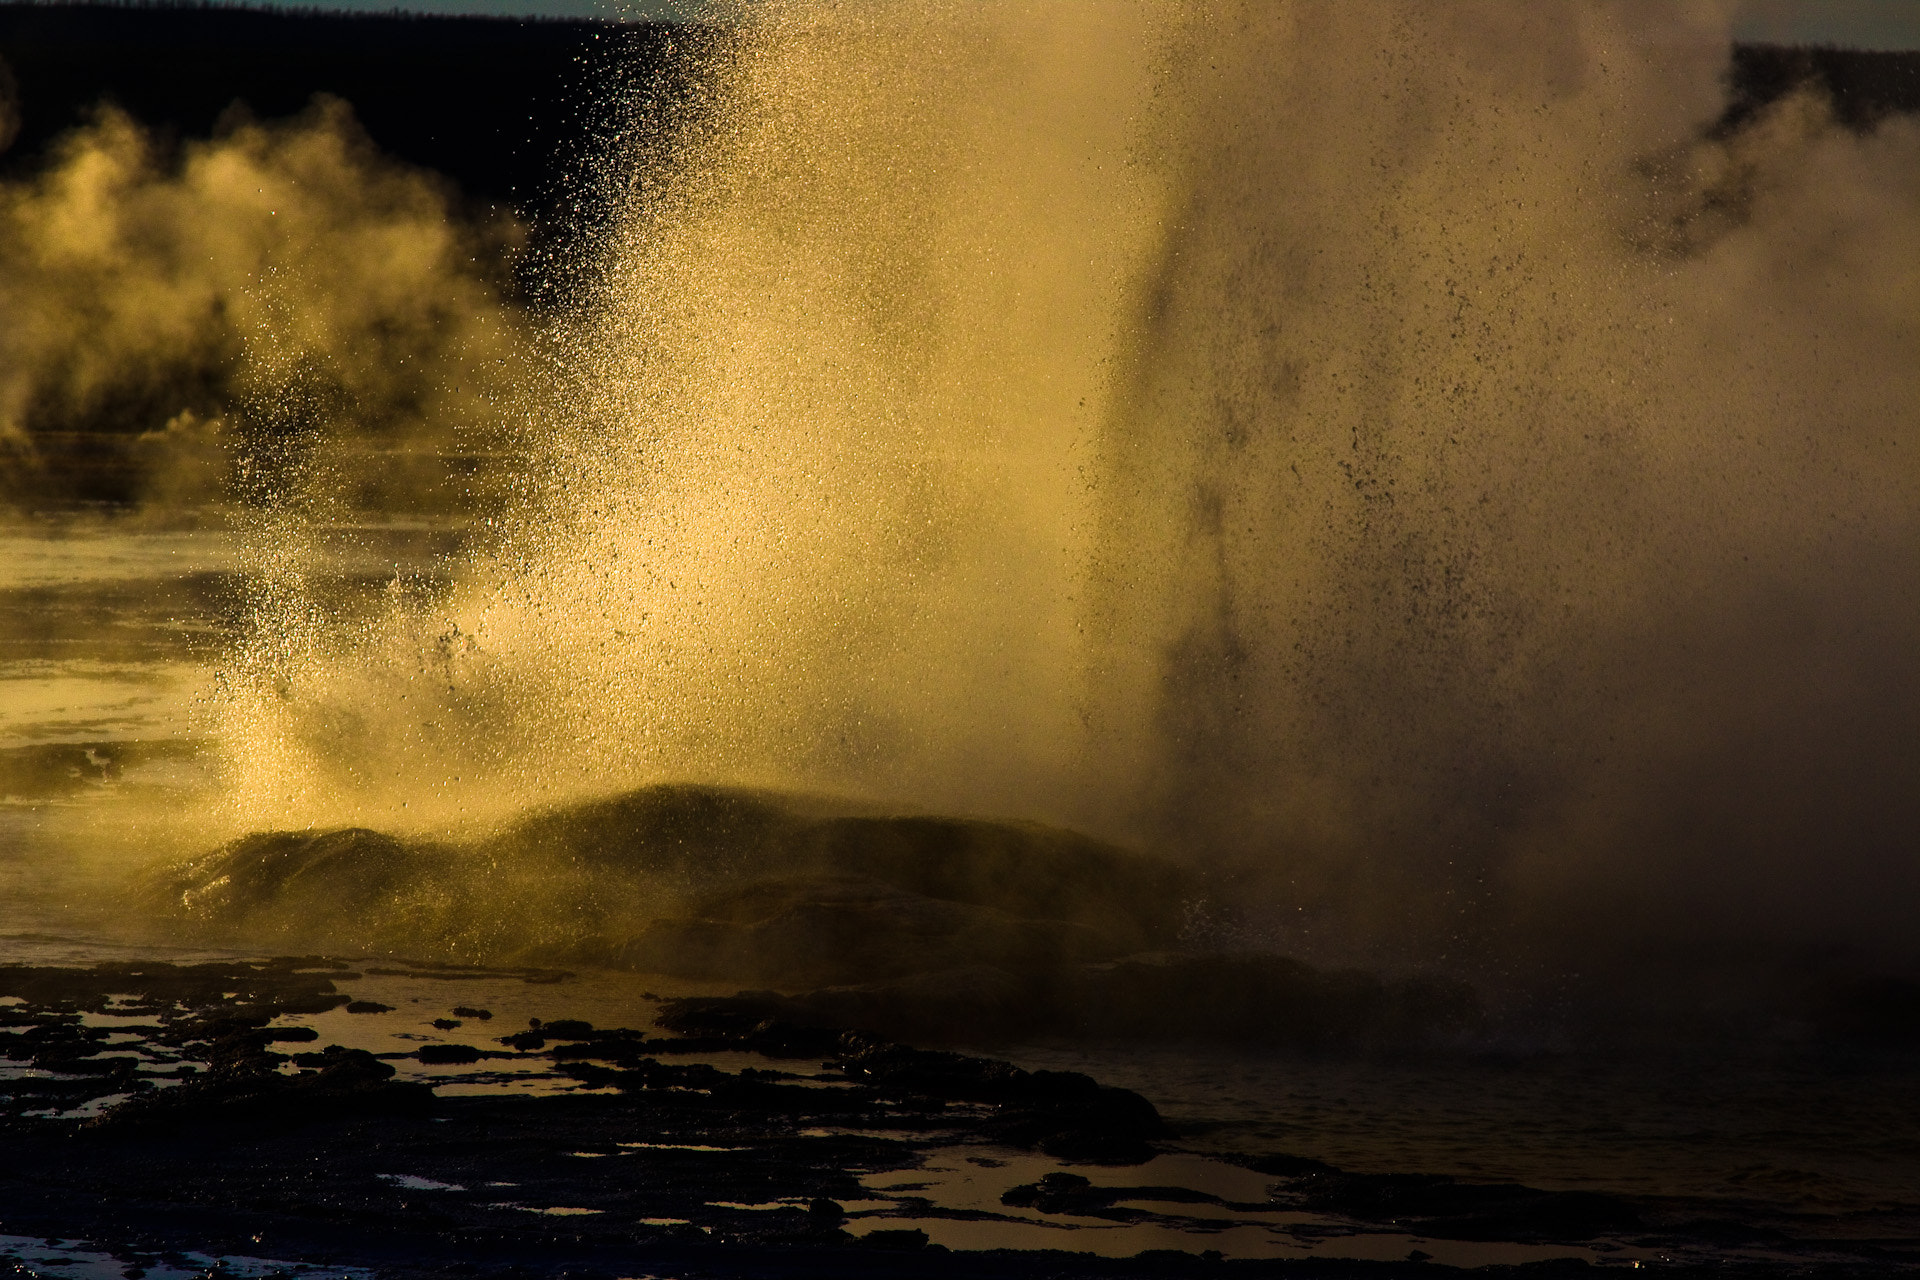 Photograph Geyser Erupting at Sunset in Yellowstone by Michael Riffle on 500px